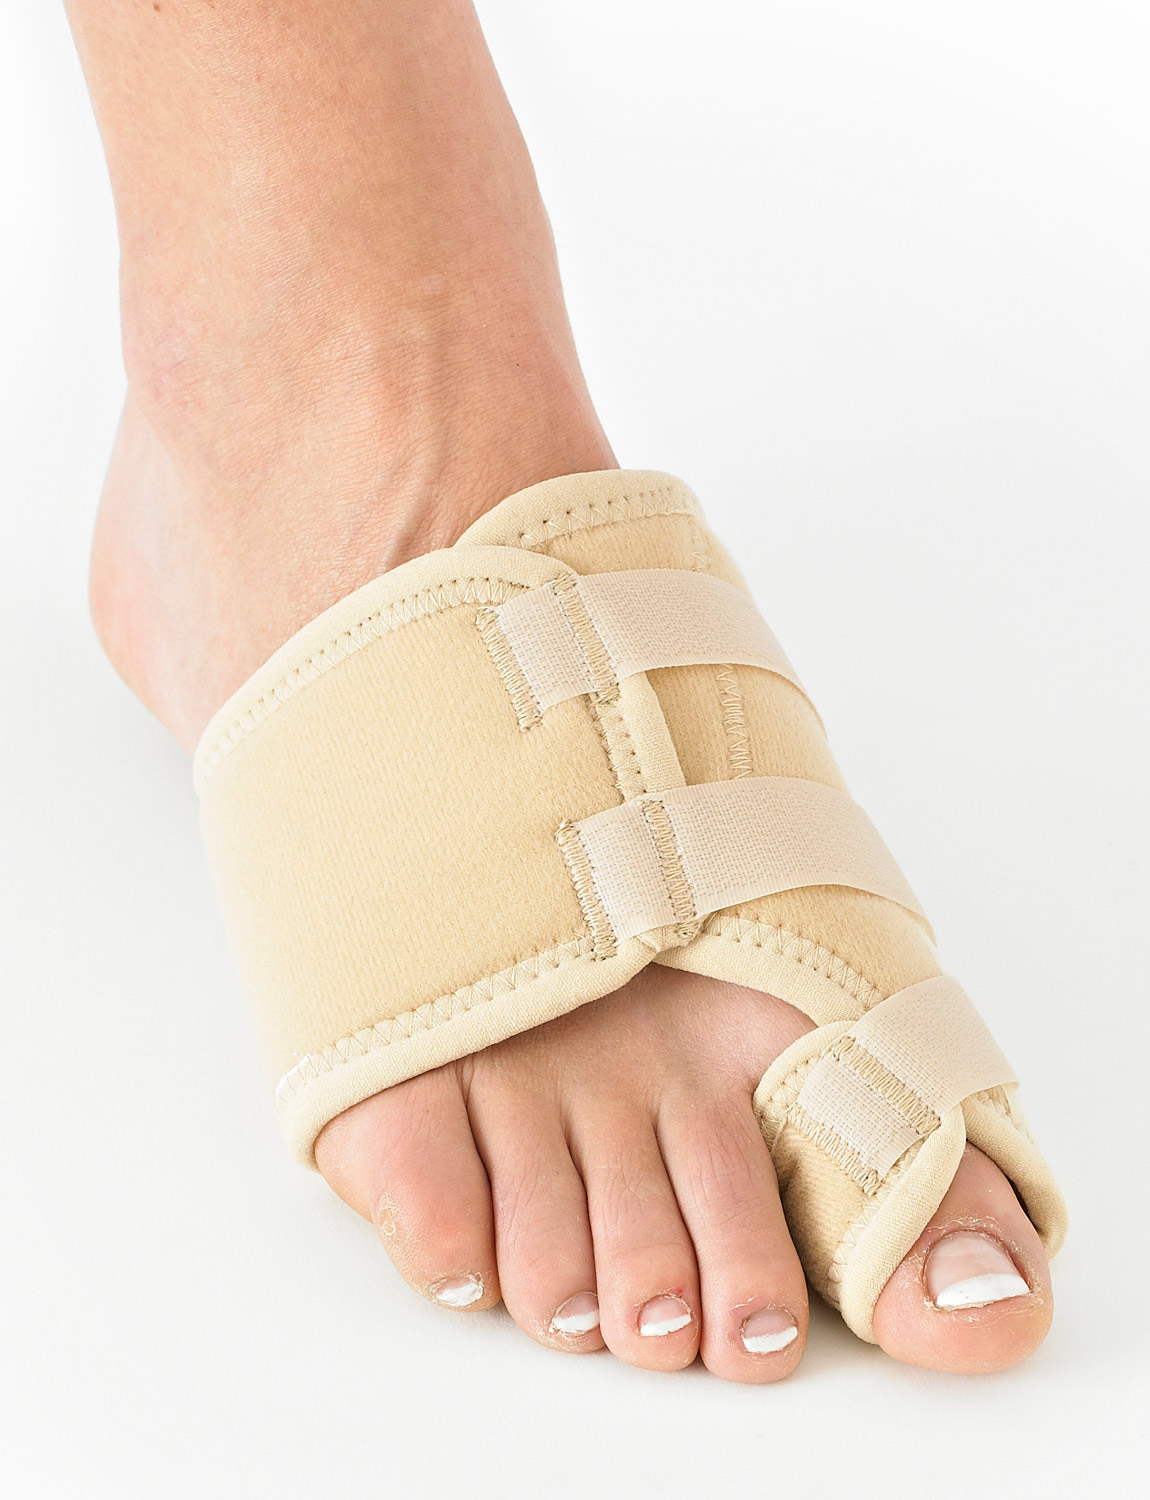 510 -BUNION CORRECTION SYSTEM - HALLUX VALGUS SOFT SUPPORT  Designed to help with the discomfort, pressure and inflammation experienced by Hallux Valgus deformities. The support is designed to help immobilize the Hallux Valgus for uninterrupted healing of bunion protrusions.